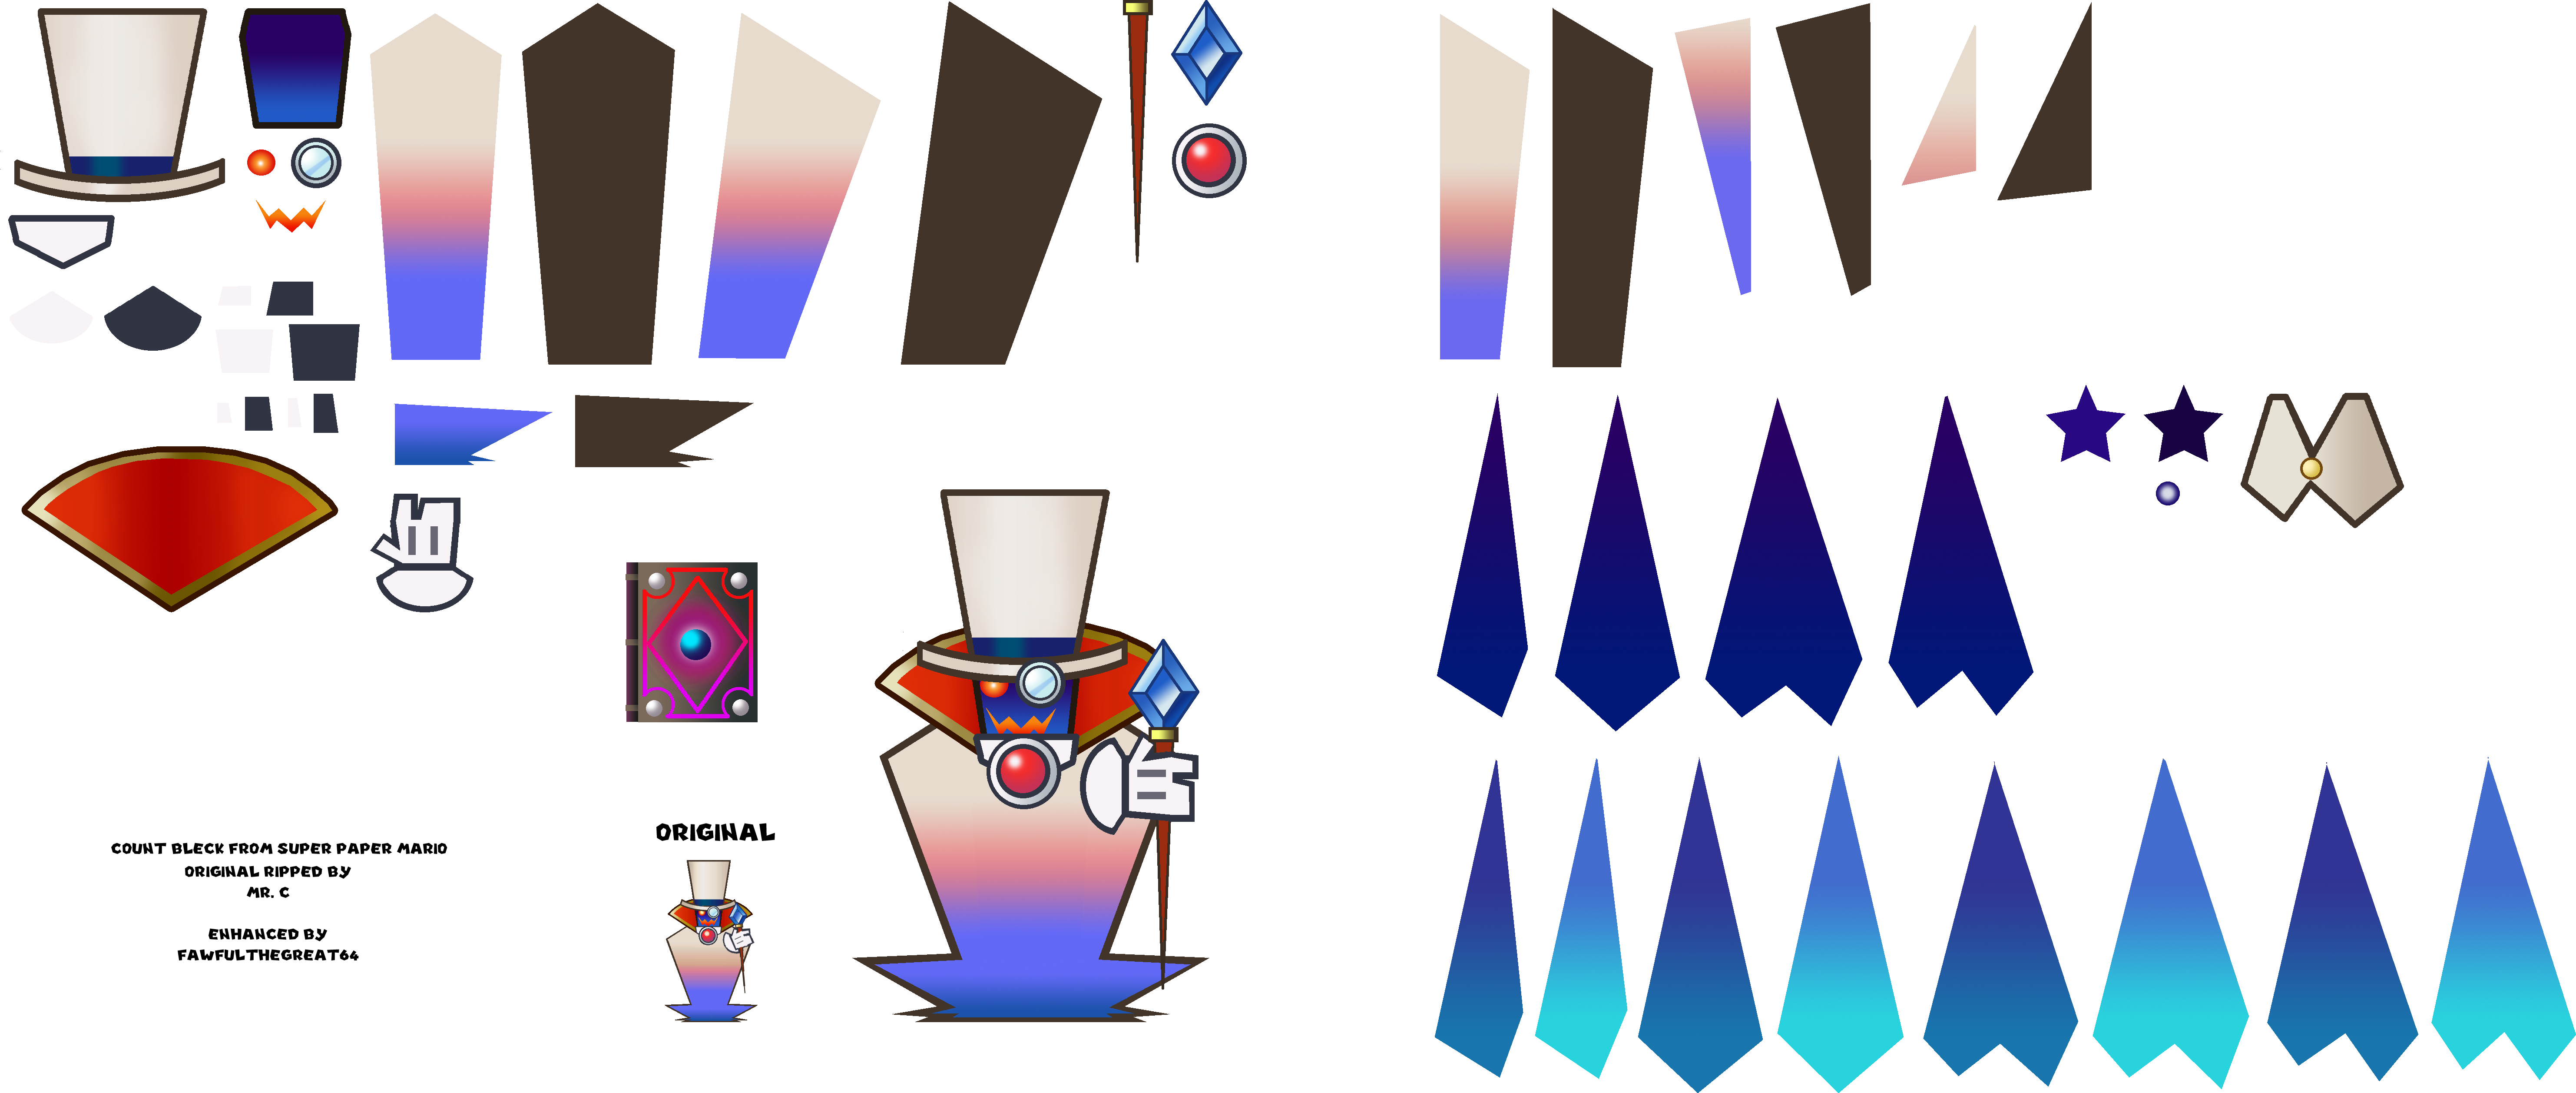 Paper Mario HD Sprite Sheet: Count Bleck by Fawfulthegreat64 on.